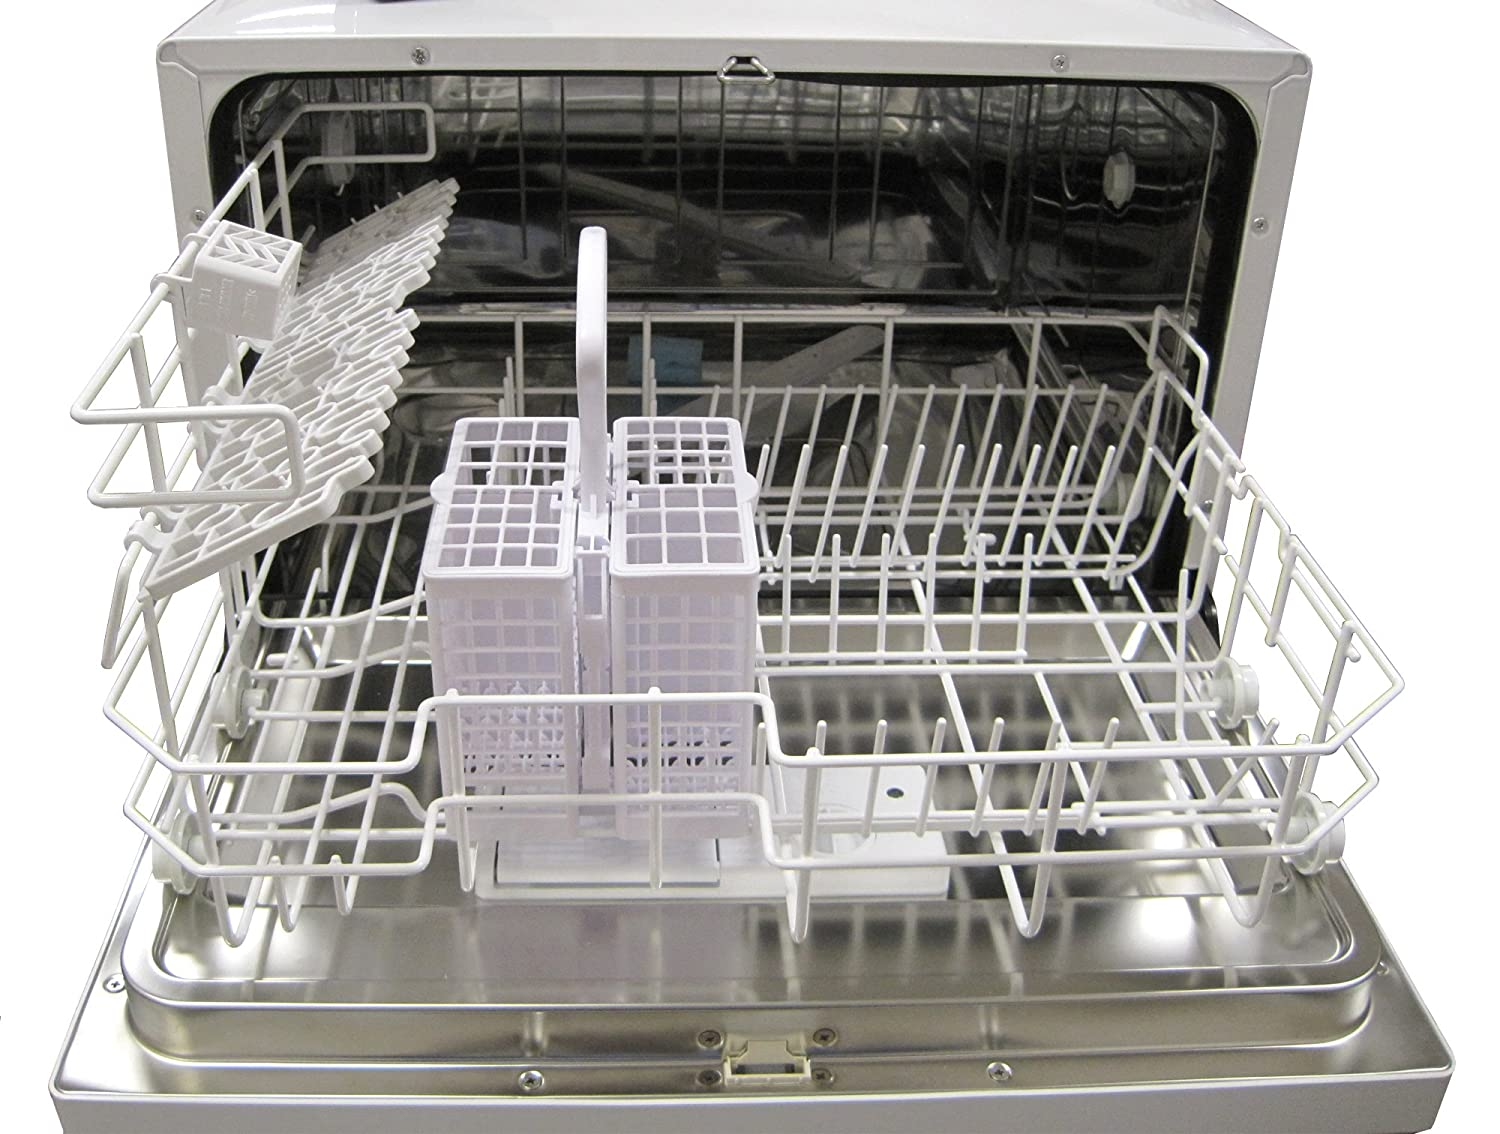 Countertop Dishwasher : Countertop Dishwasher Reviews